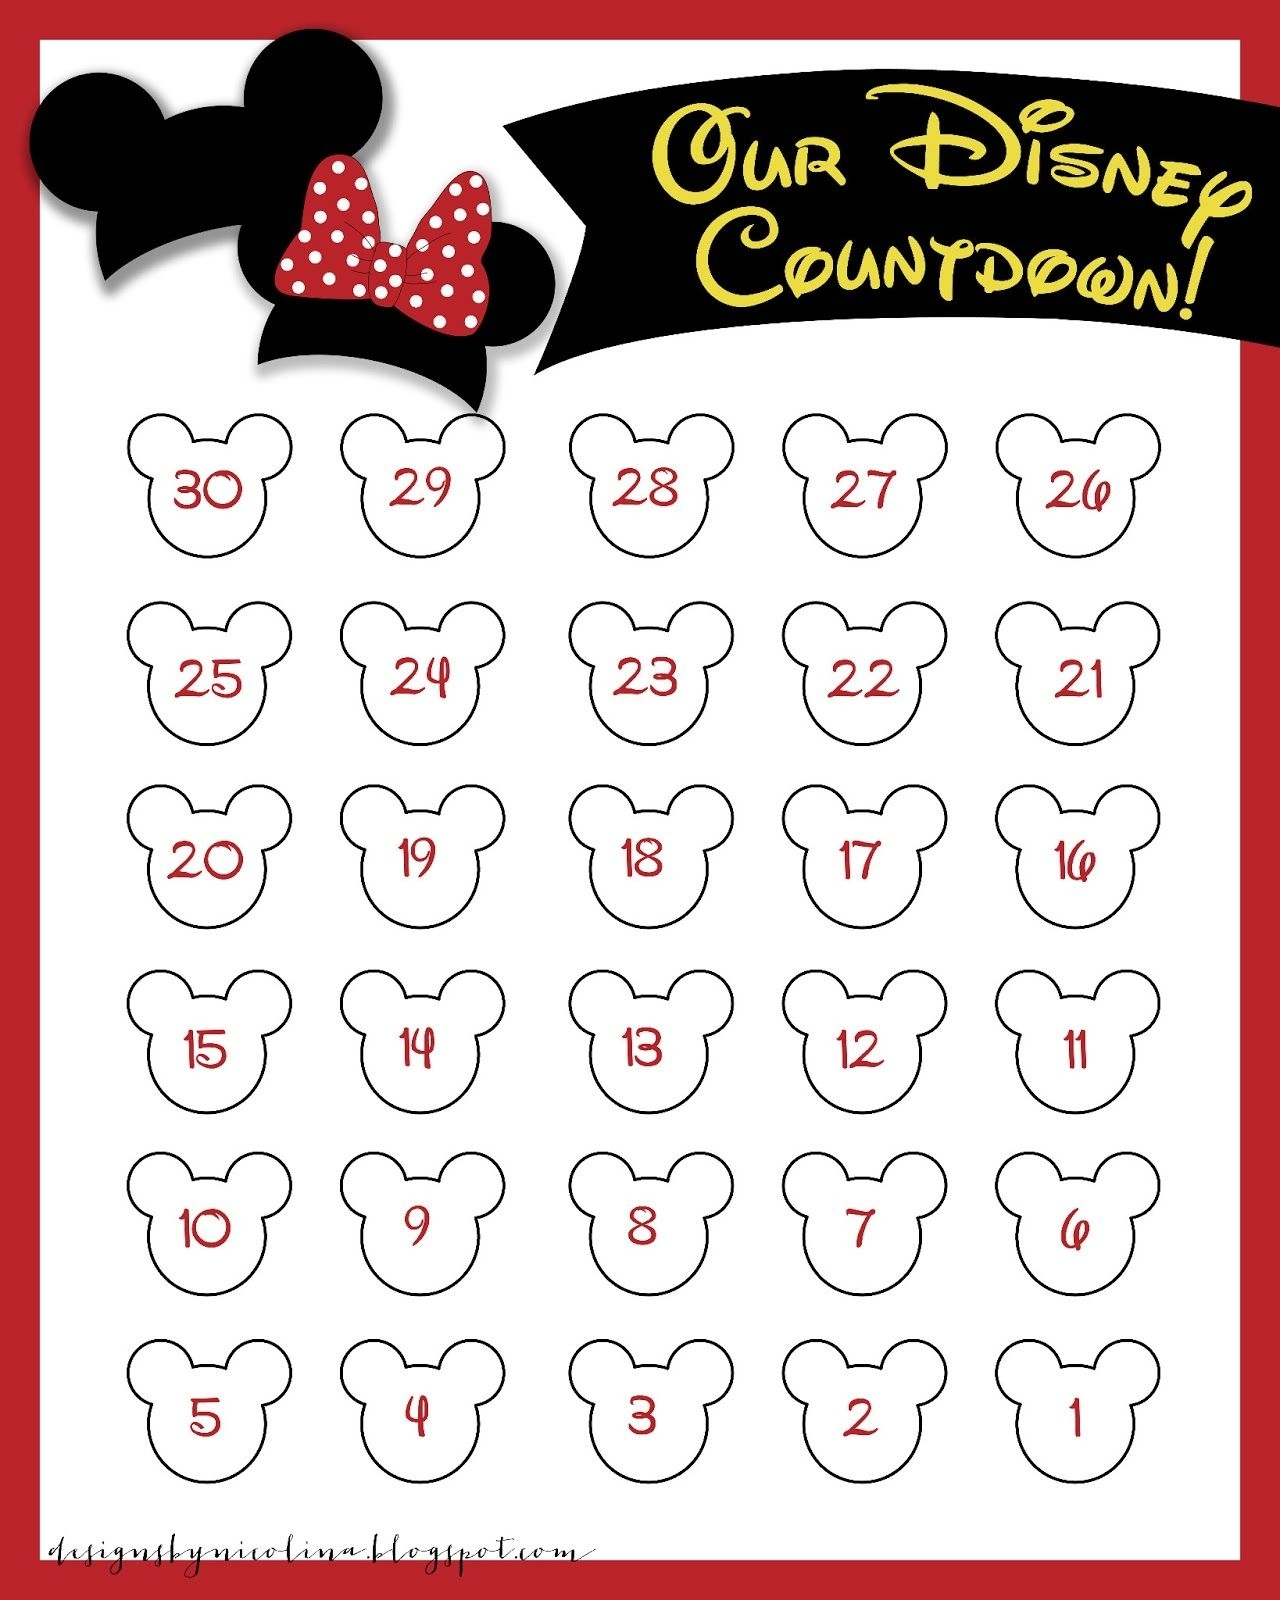 Disney 2020 Calendar Countdown Printable | Monthly Printable in Disney Printable Calendar